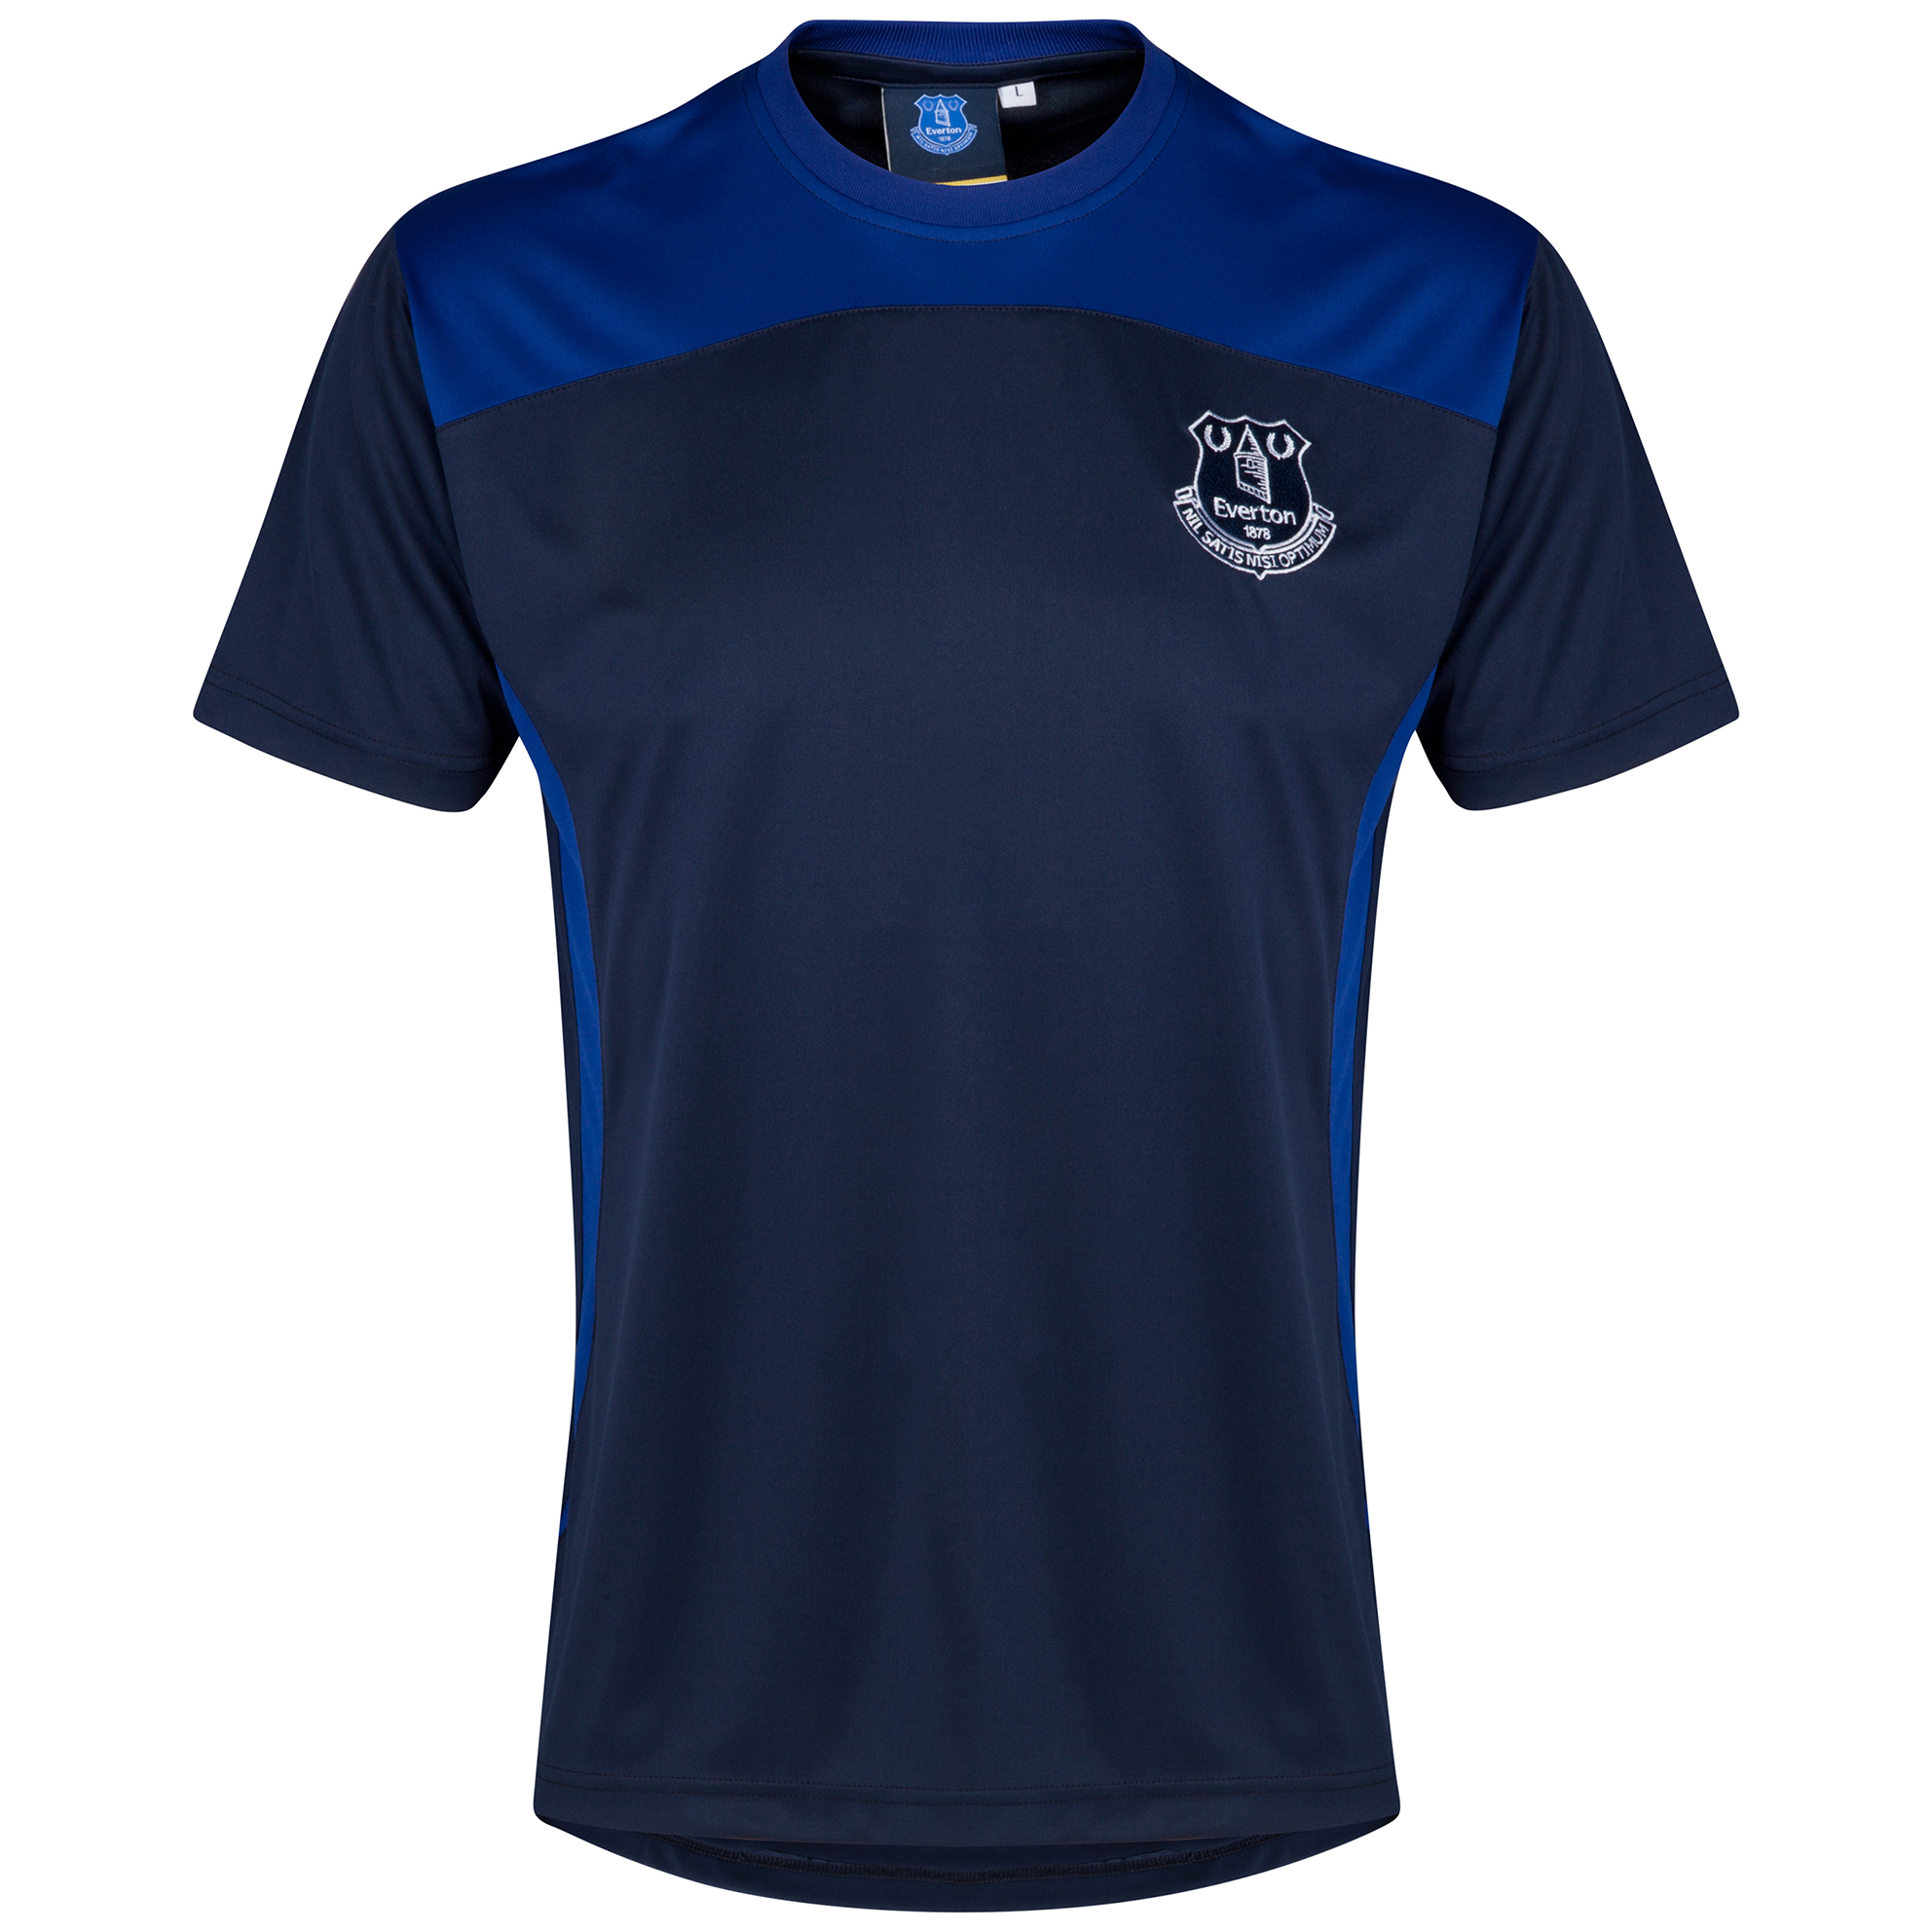 Everton Essential Poly T-Shirt - Navy/Everton Blue - Older Boys